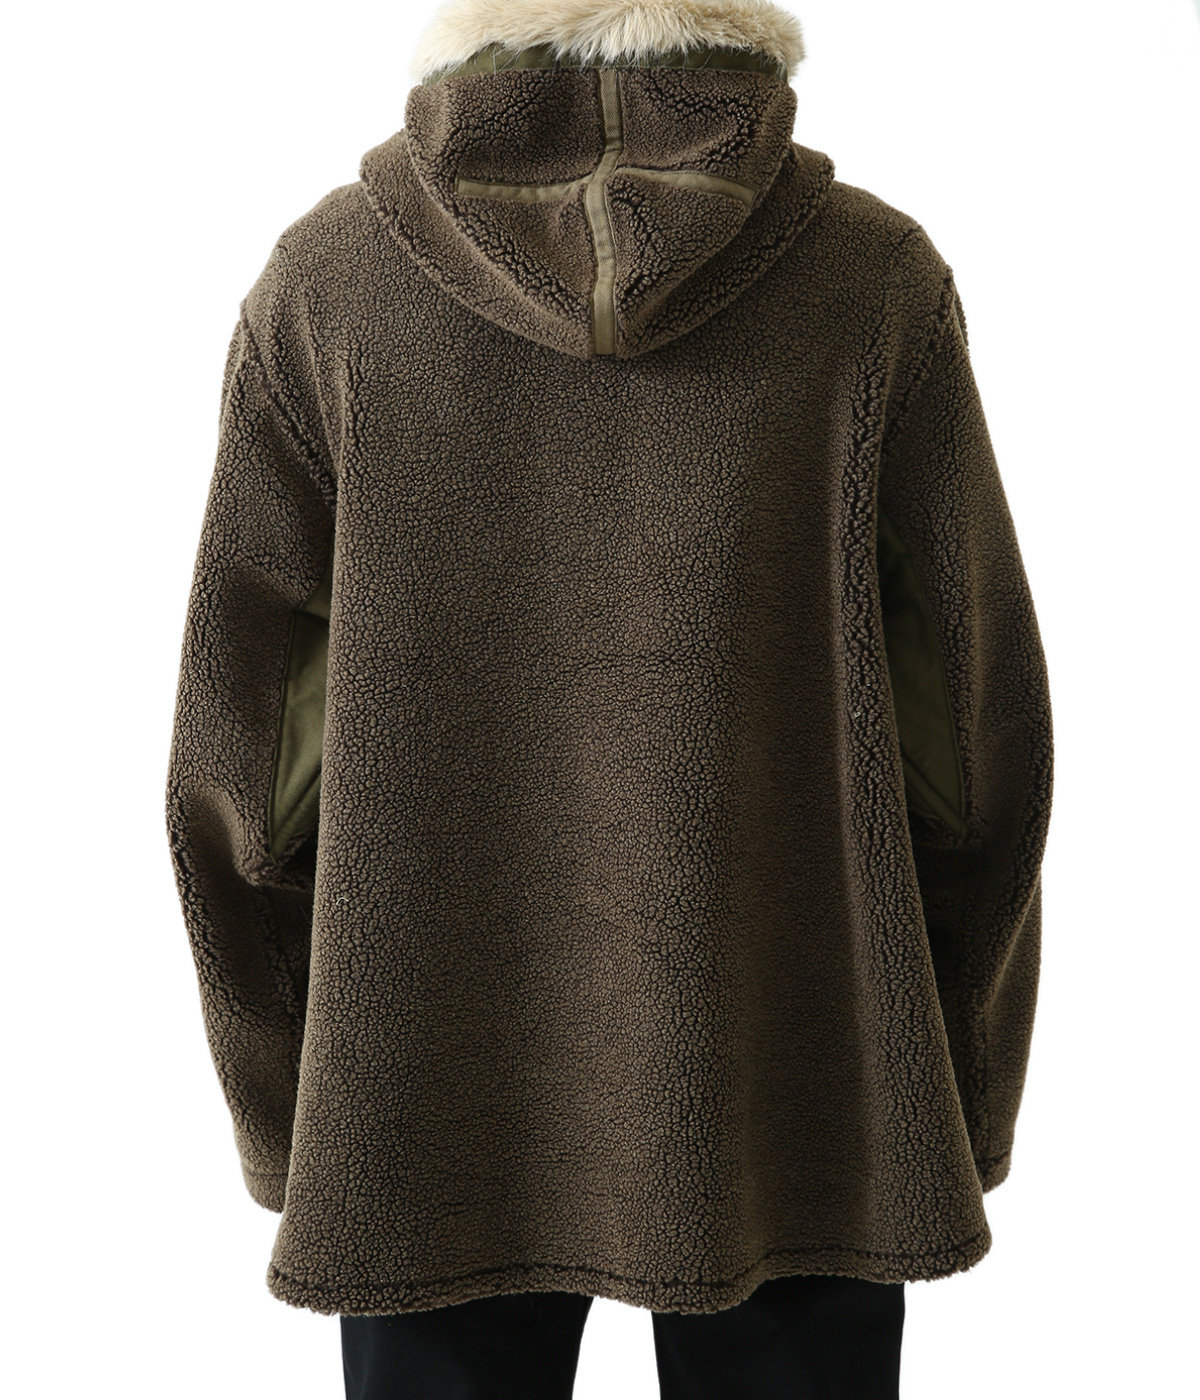 FUR HOODED FLEECE JACKET (UNISEX)